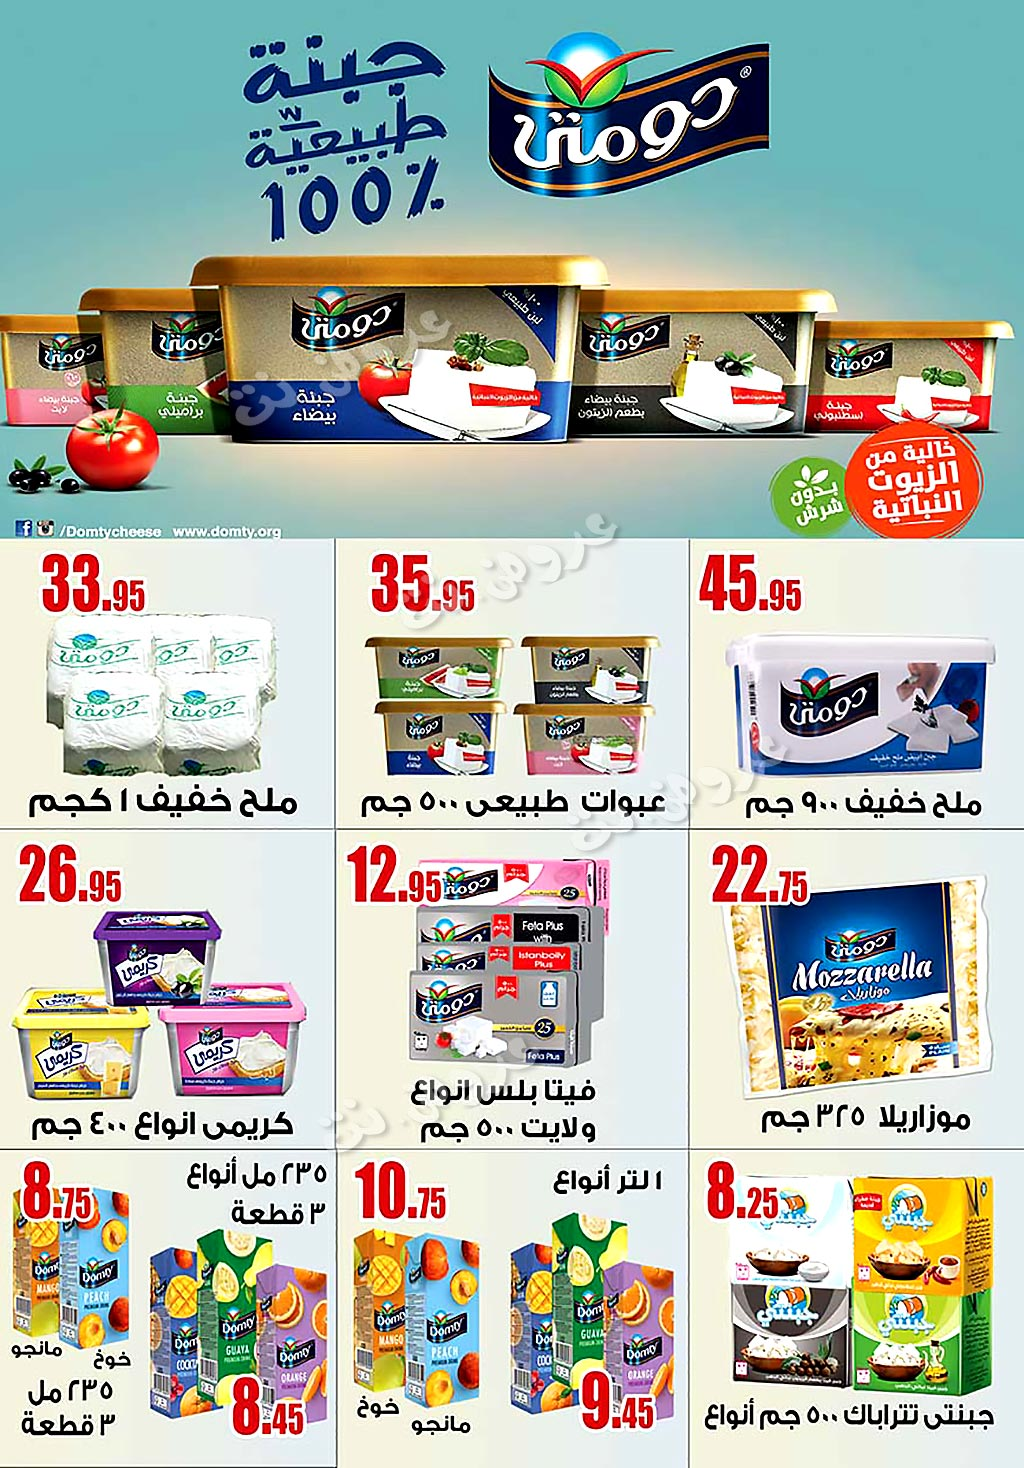 ragab-sons offers from 14aug to 27aug 2019 page number 25 عروض أولاد رجب من 14 أغسطس حتى 27 أغسطس 2019 صفحة رقم 25